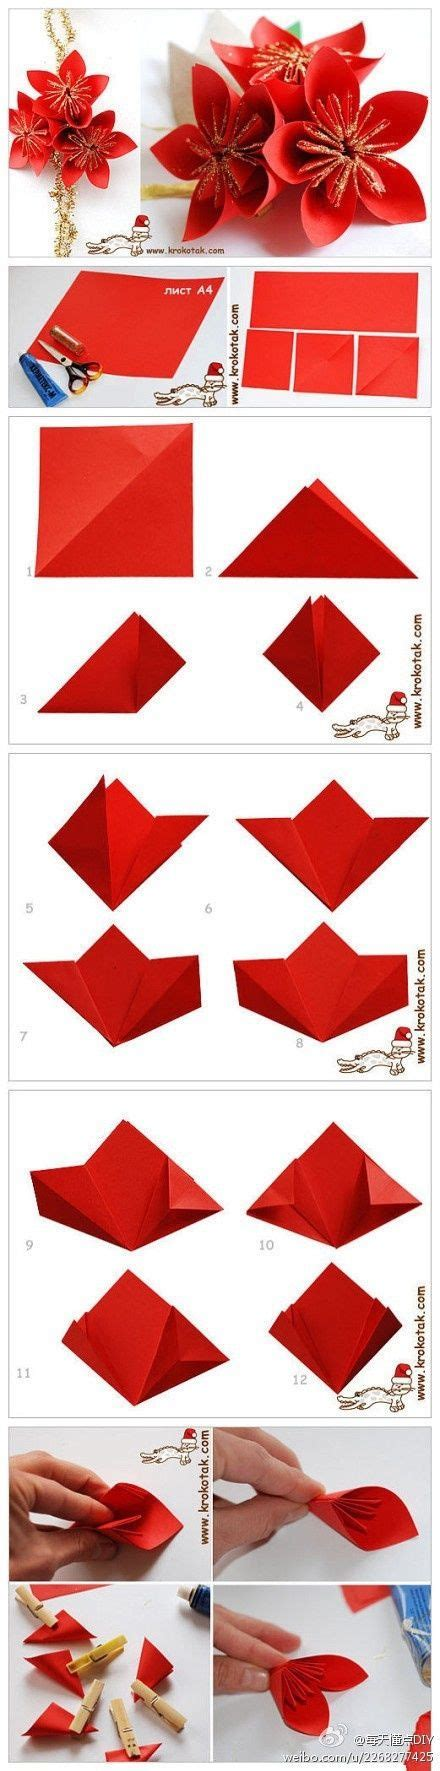 printable origami christmas paper origami poinsettia pictures photos and images for